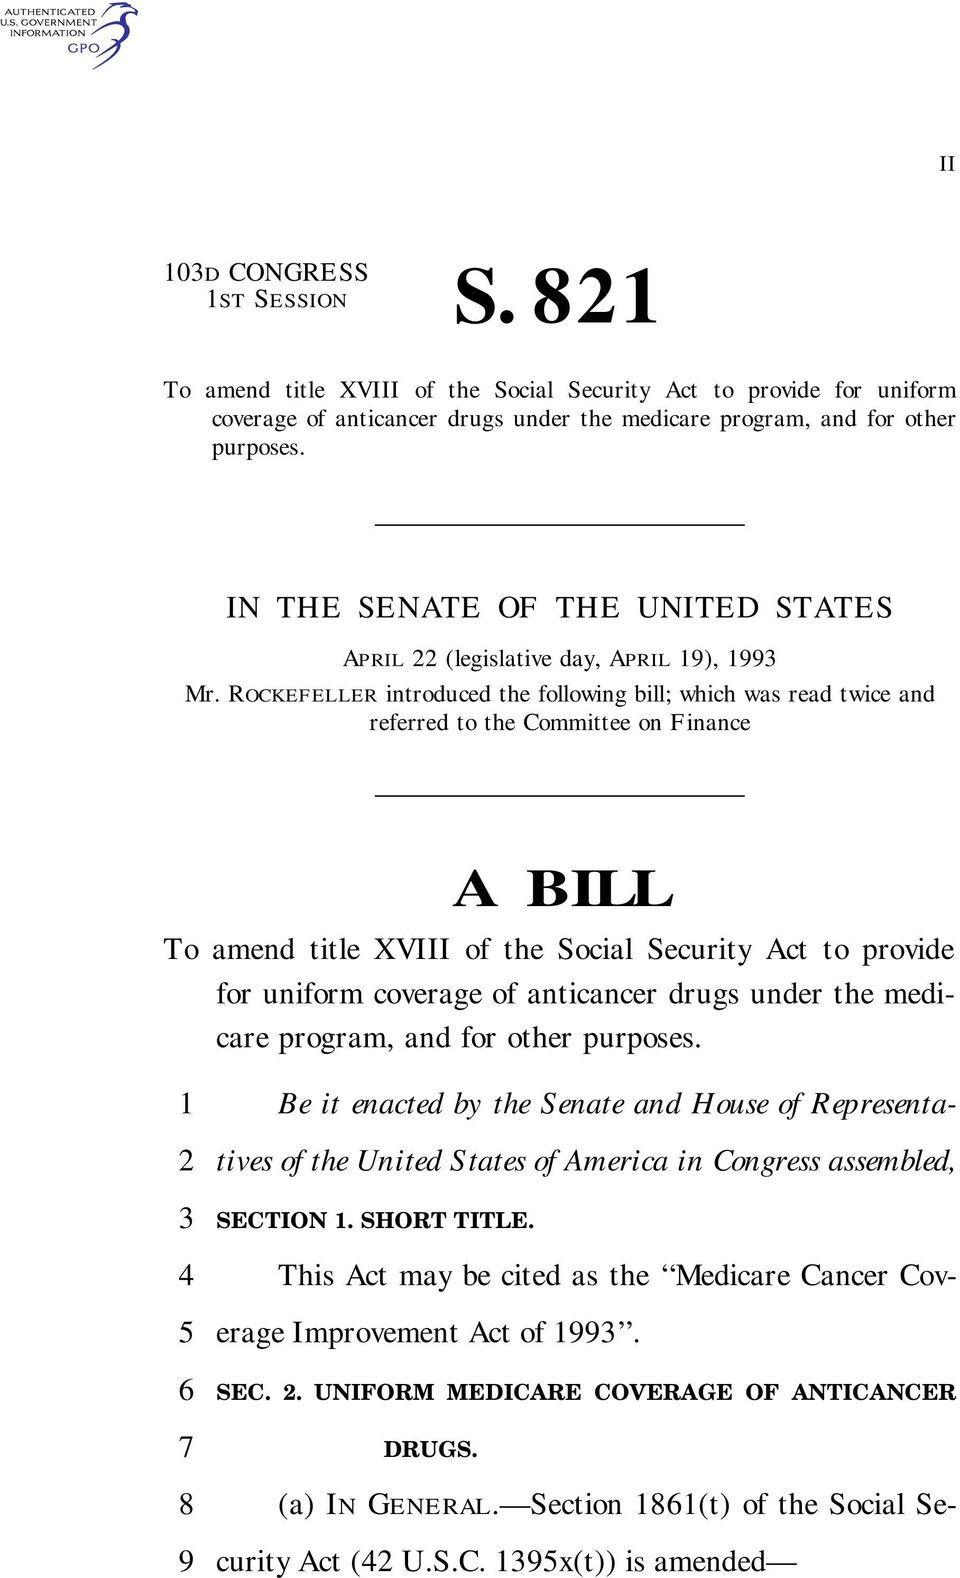 ROCKEFELLER introduced the following bill; which was read twice and referred to the Committee on Finance A BILL To amend title XVIII of the Social Security Act to provide for uniform coverage of